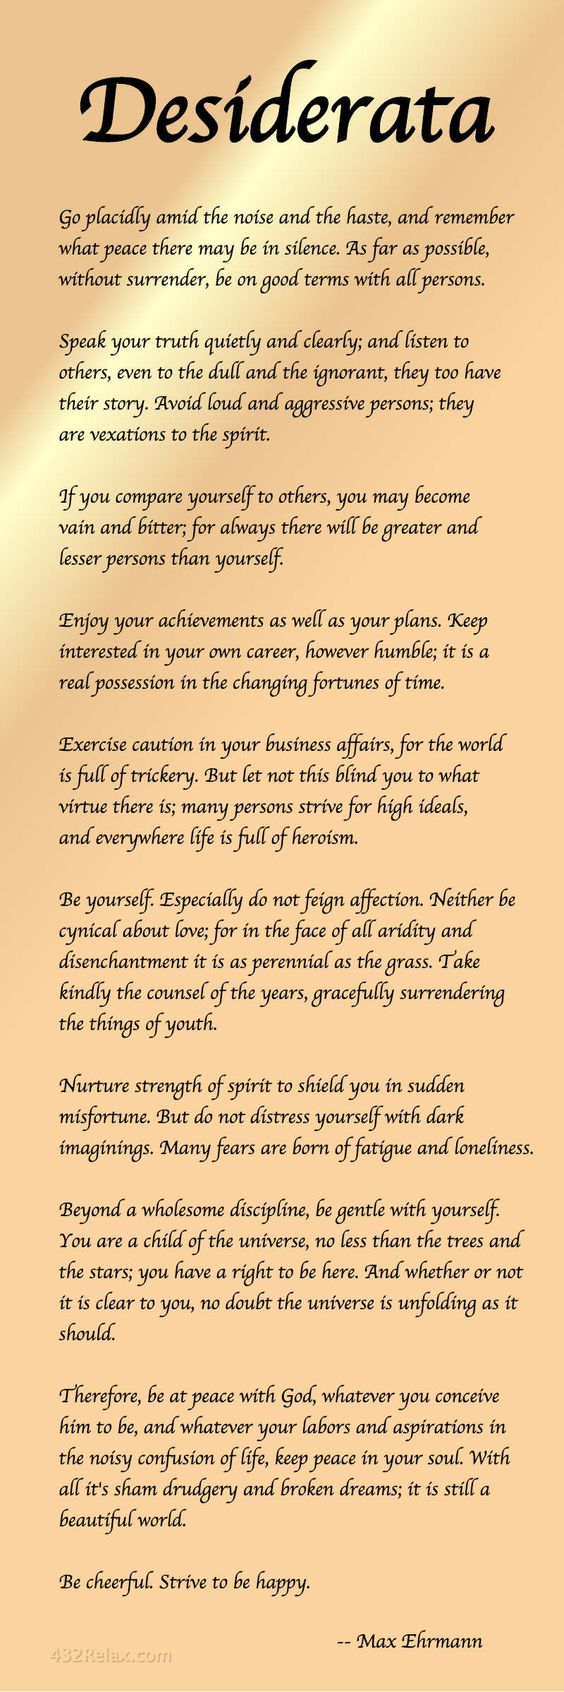 This is the Desiderata Poem by Max Ehrmann - #Desiderata #432Relax